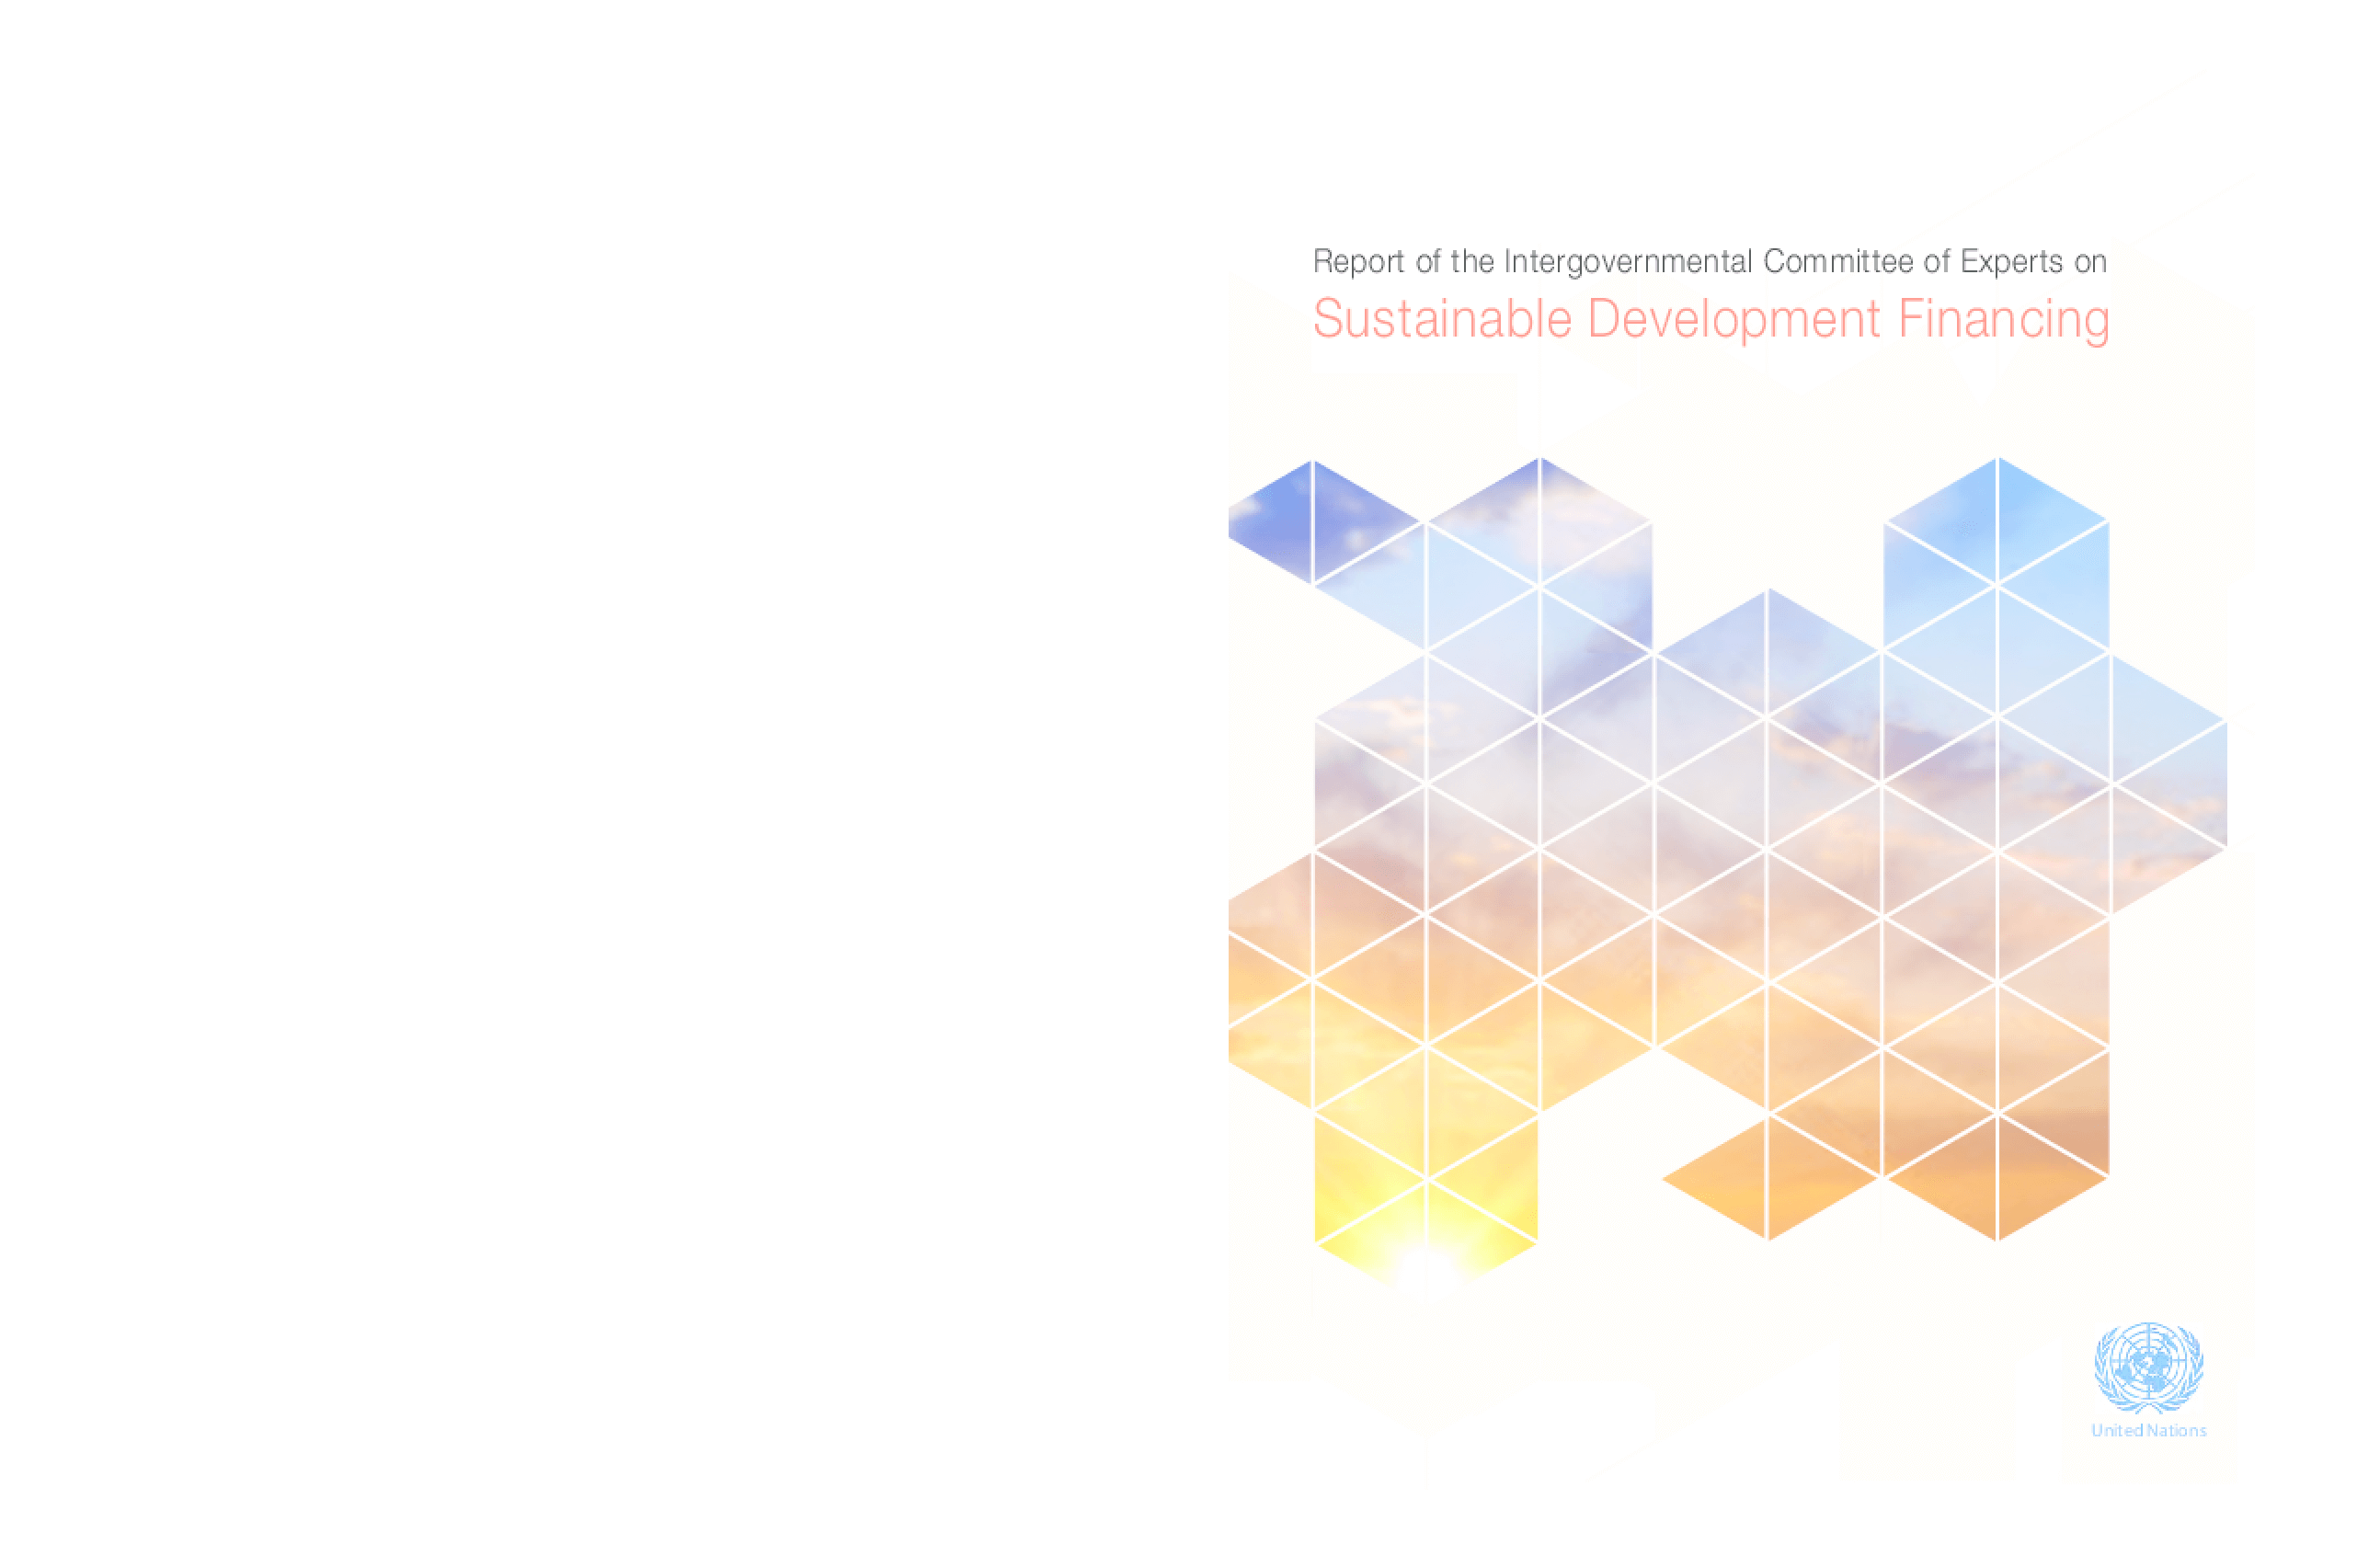 Report of the Intergovernmental Committee of Experts on Sustainable Development Financing